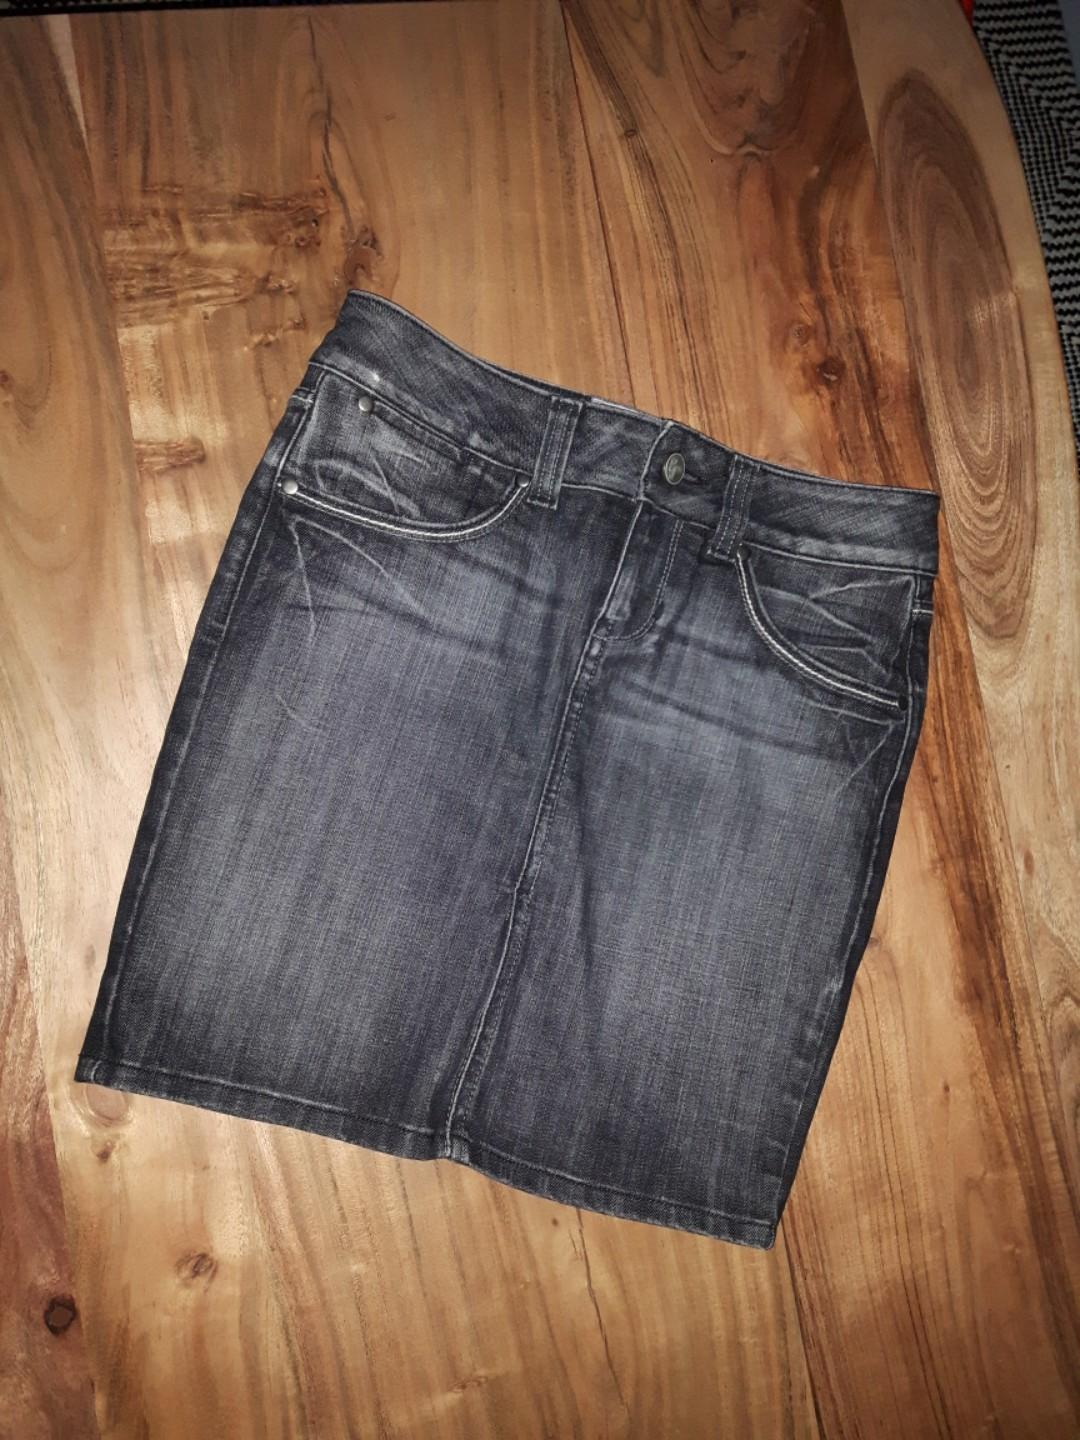 GUESS PREMIUM JEANS -LOWERED-SIZE 4 SKIRT IN FADED BLACK WITH PINCHED POCKETS